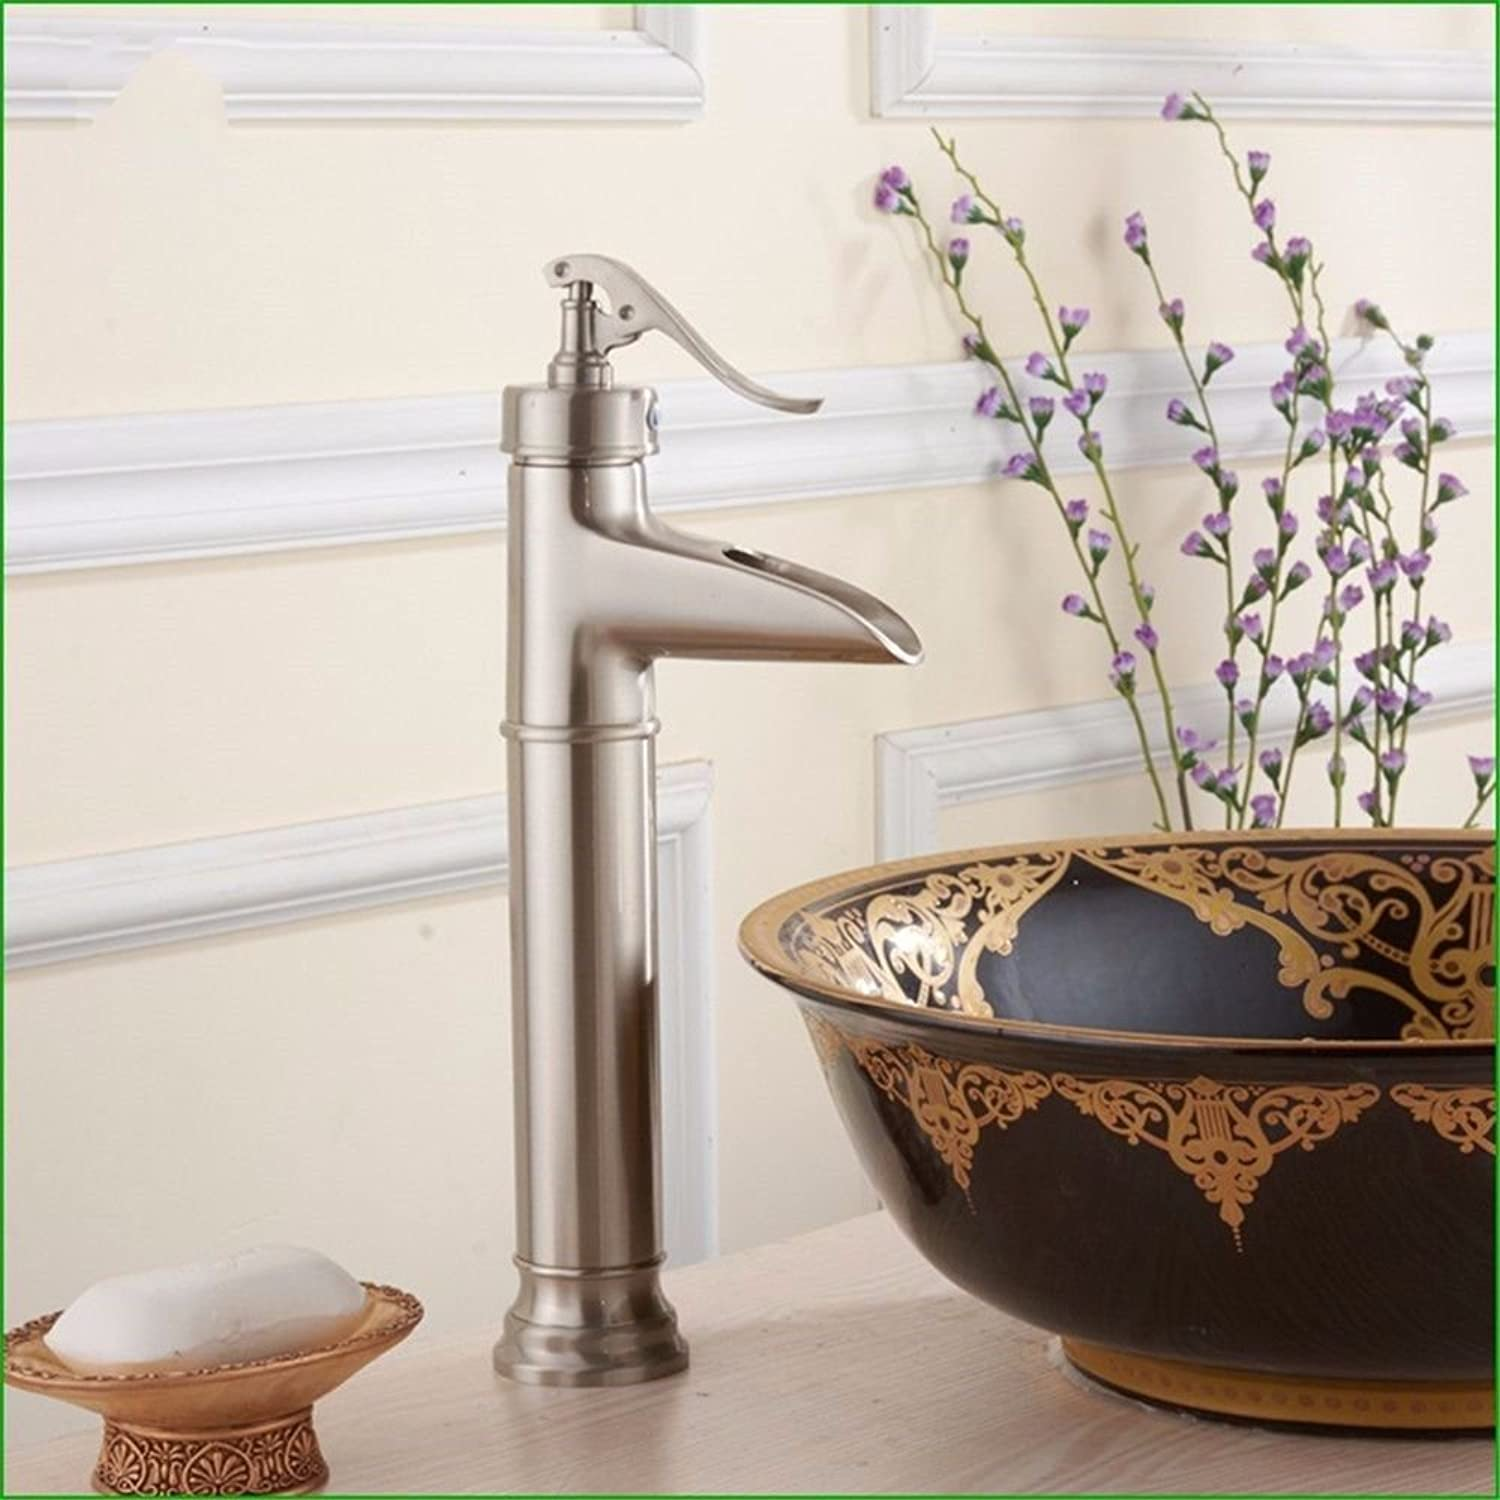 NewBorn Faucet Water Taps Hot And Cold Water Retro-Copper Brushed Waterfall Water Tap Sink Water Tap Single Hole Basin Basin Cold Water Tap.